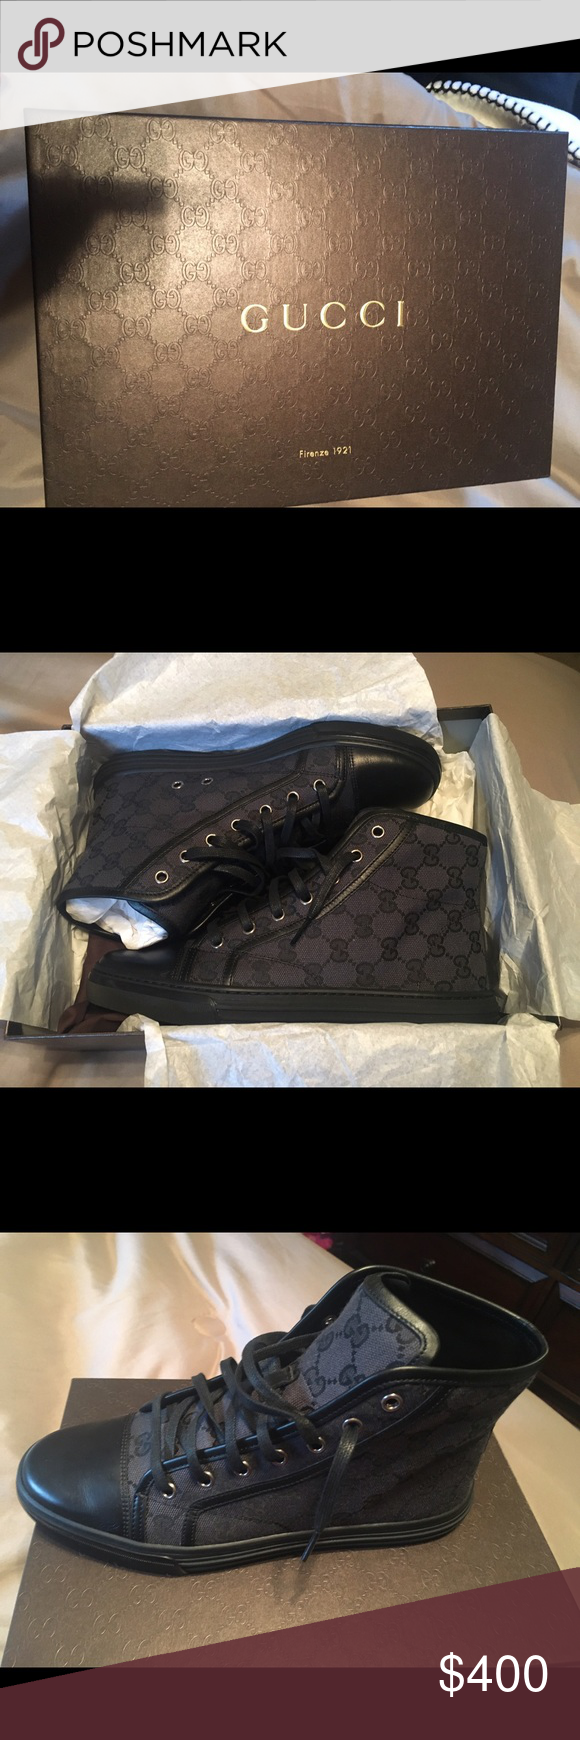 Gucci sneakers (black) 100% authentic. Gucci sneakers. Includes shoe box, duster bag, and verification card. Gucci Shoes Sneakers